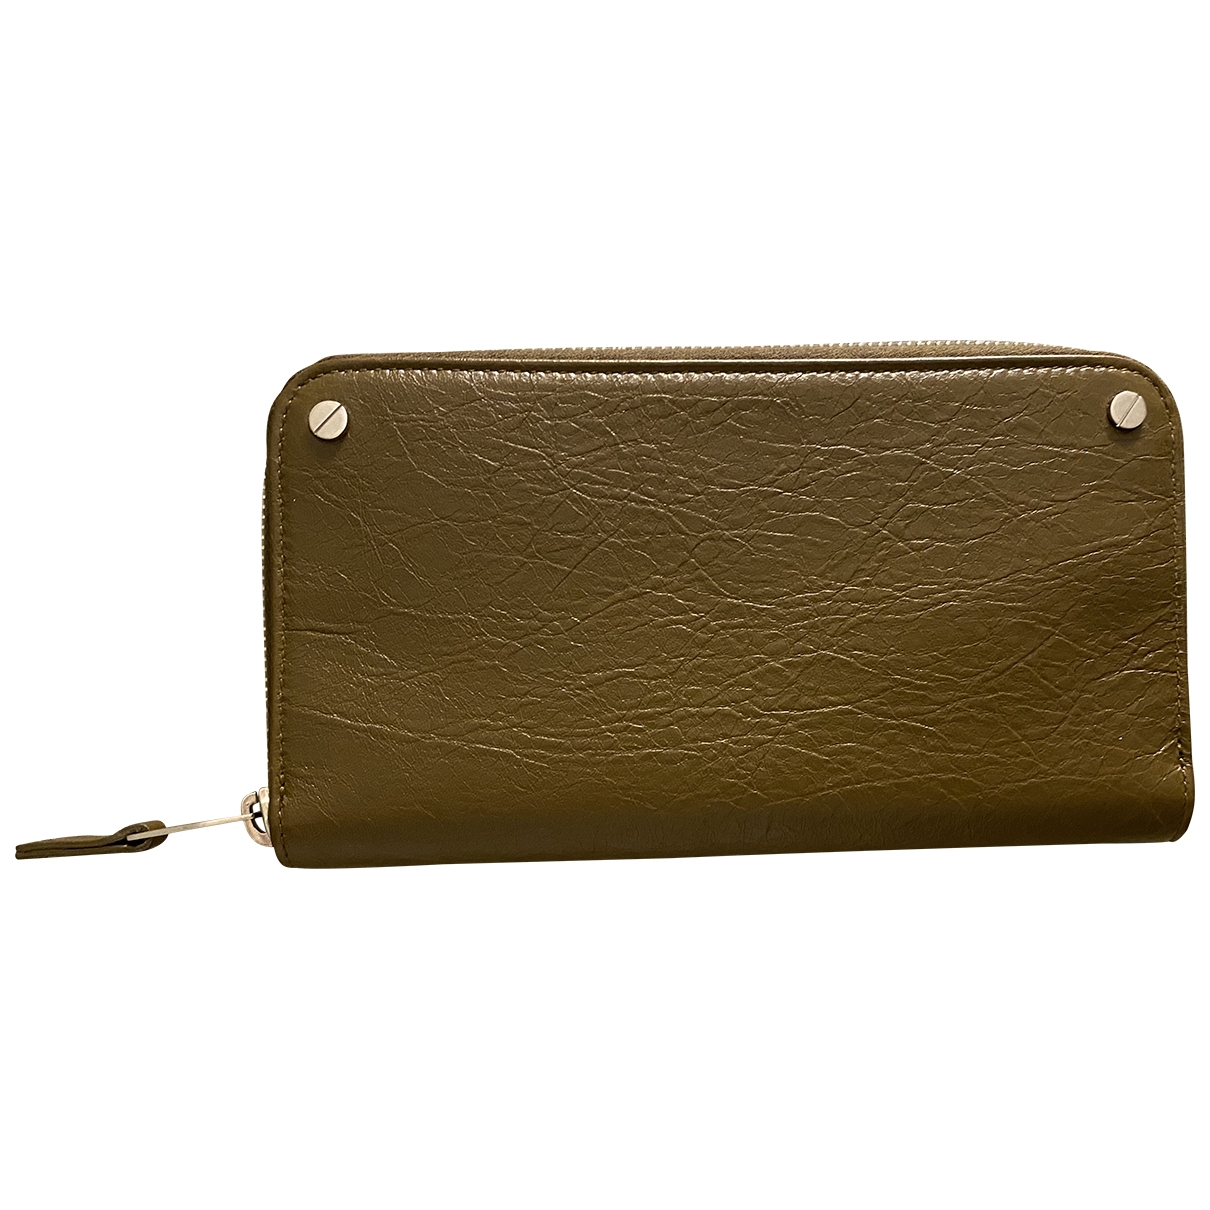 Balenciaga \N Khaki Leather wallet for Women \N